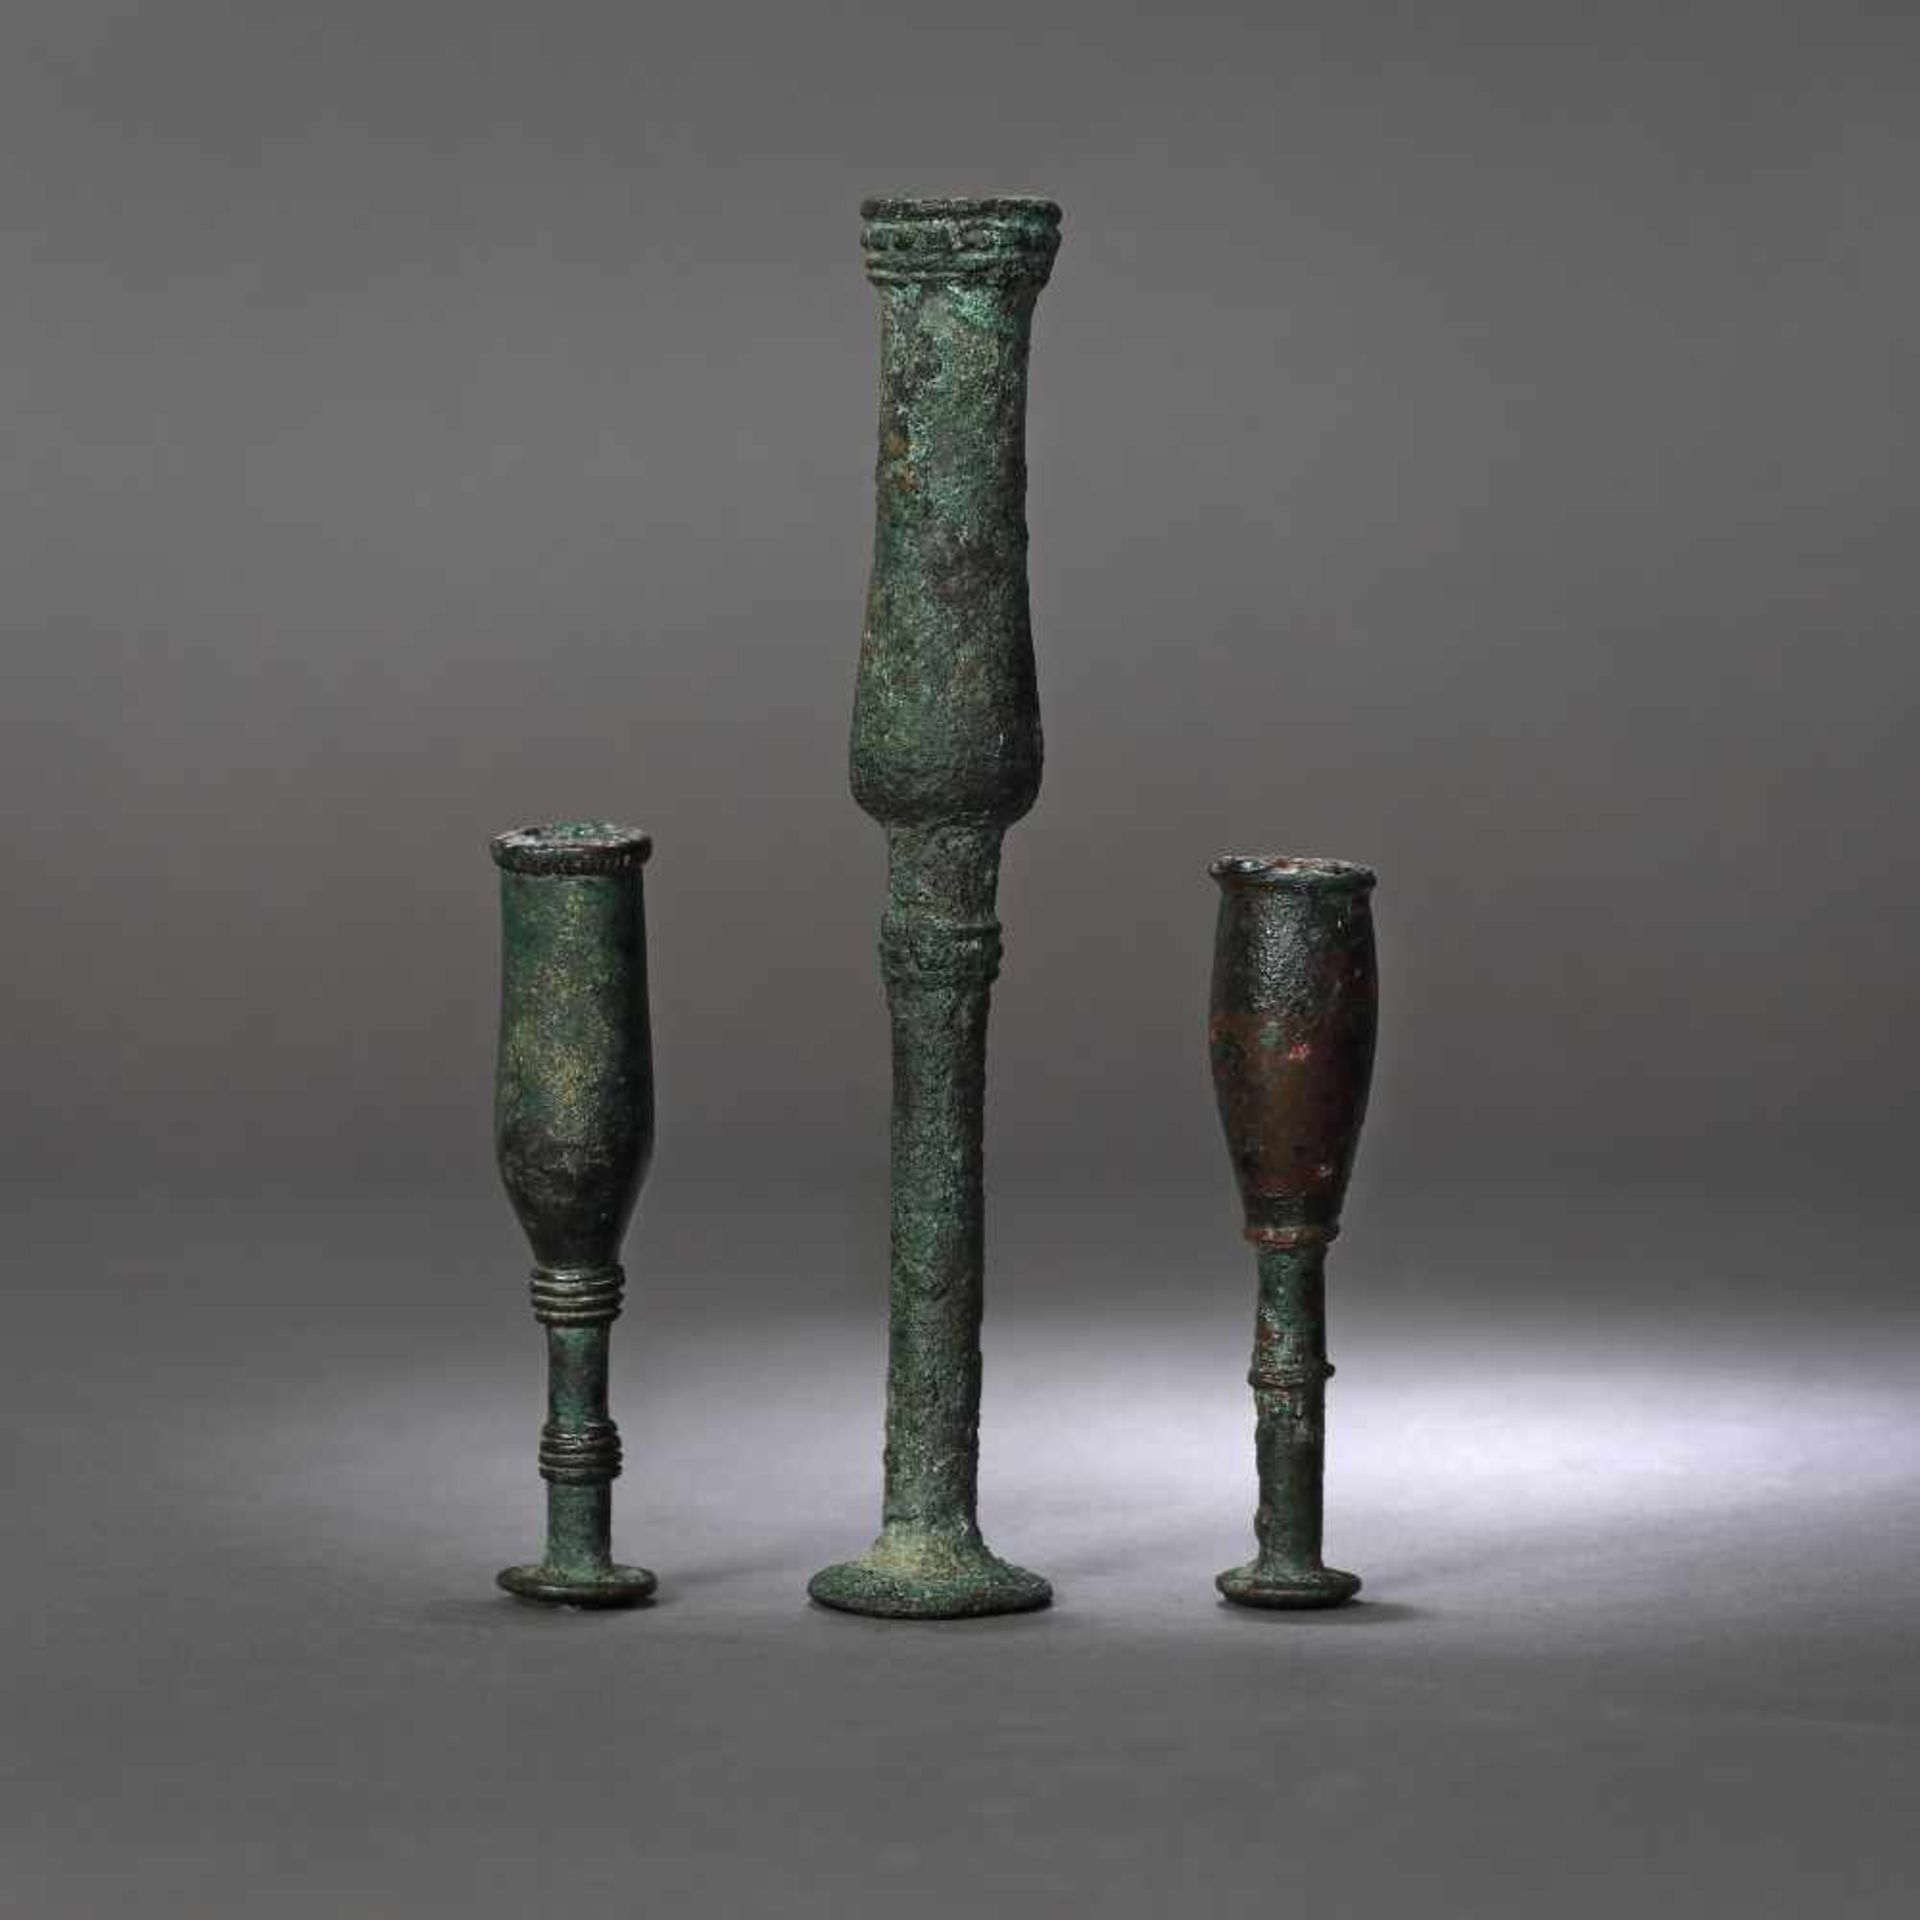 Three bronze candlesticks, possibly Luristan, Persia, the first part of the first millennium B.C.